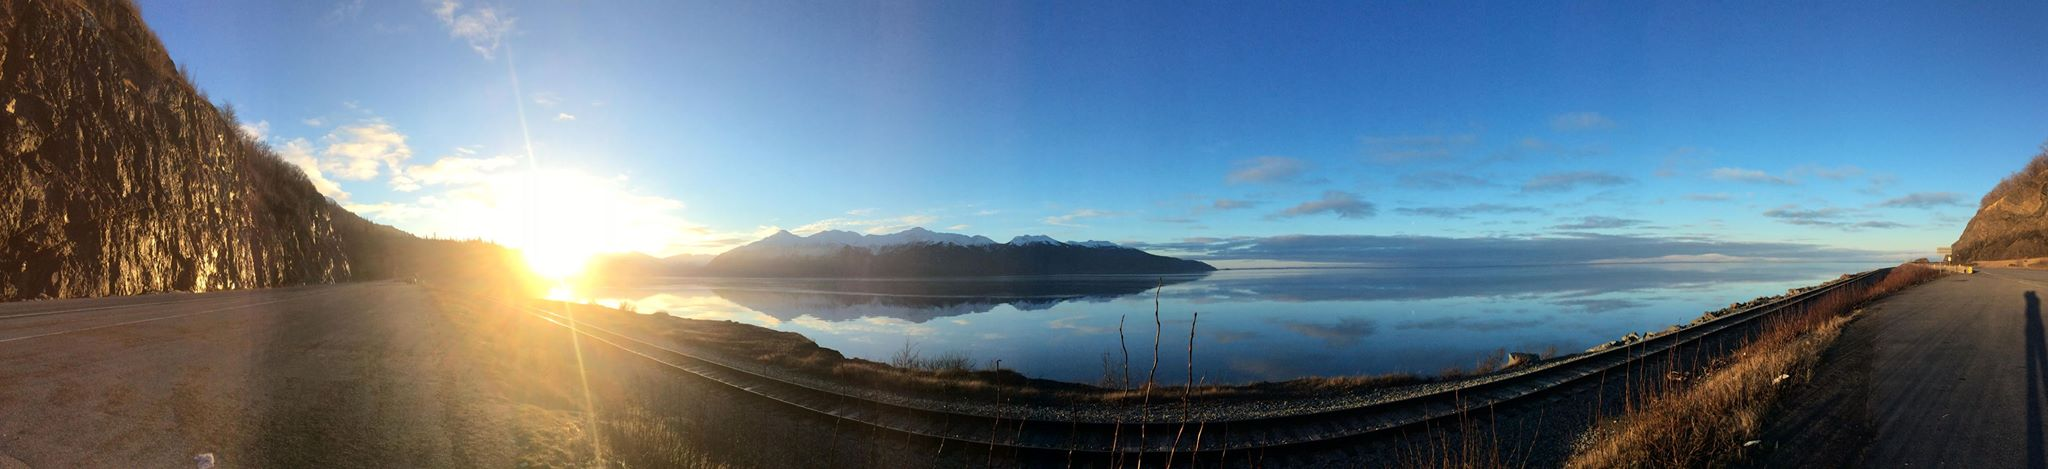 The Sun Rises Over the Chugach Mountains on the Seward Highway